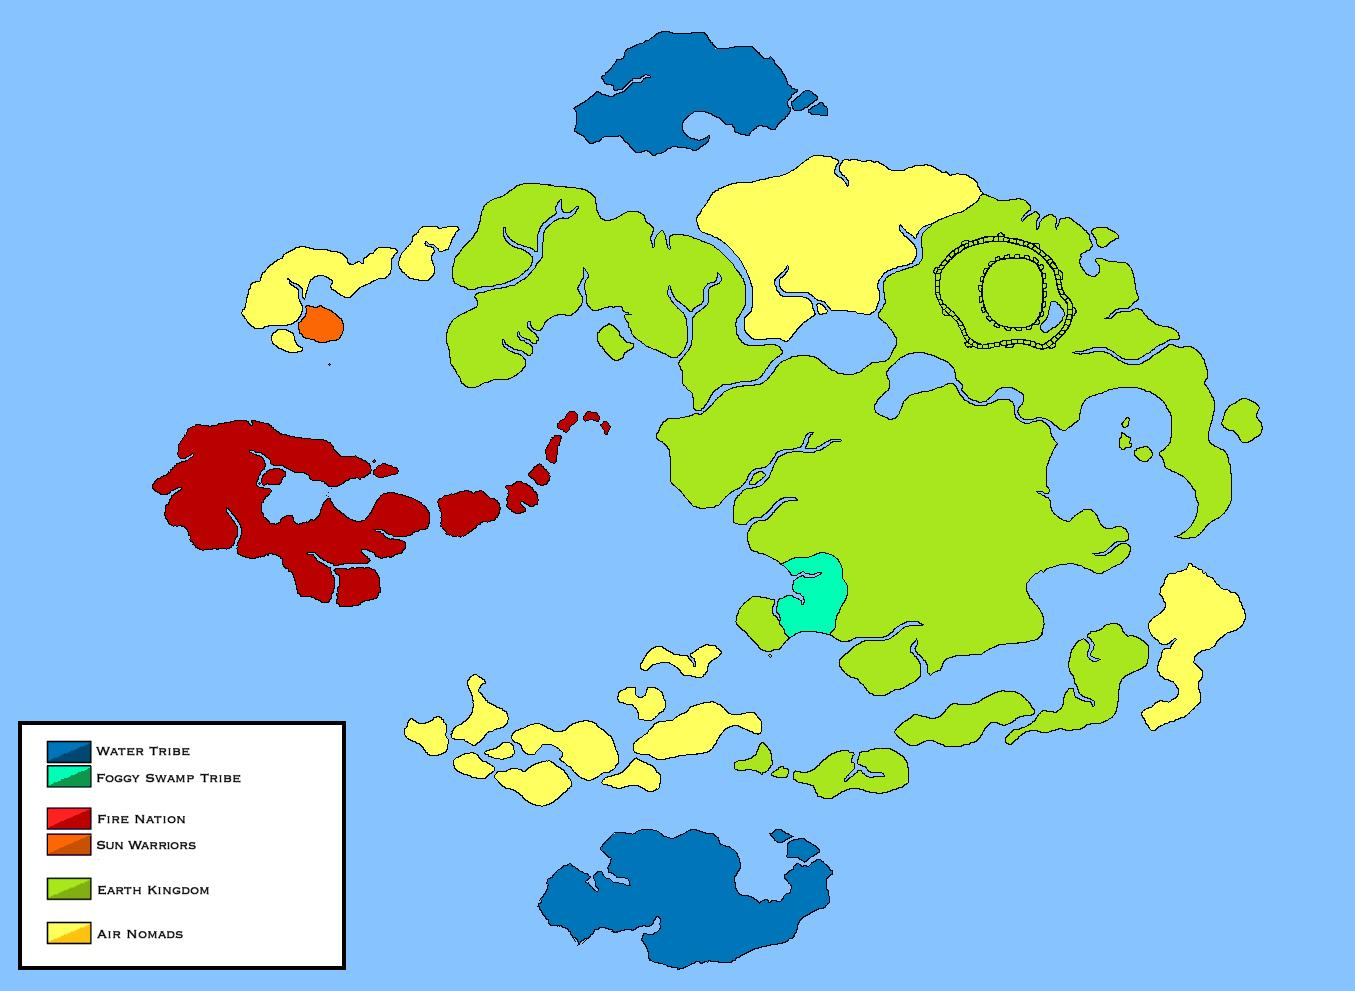 World of avatar political map pre 100 years war by loudo on deviantart world of avatar political map pre 100 years war by loudo gumiabroncs